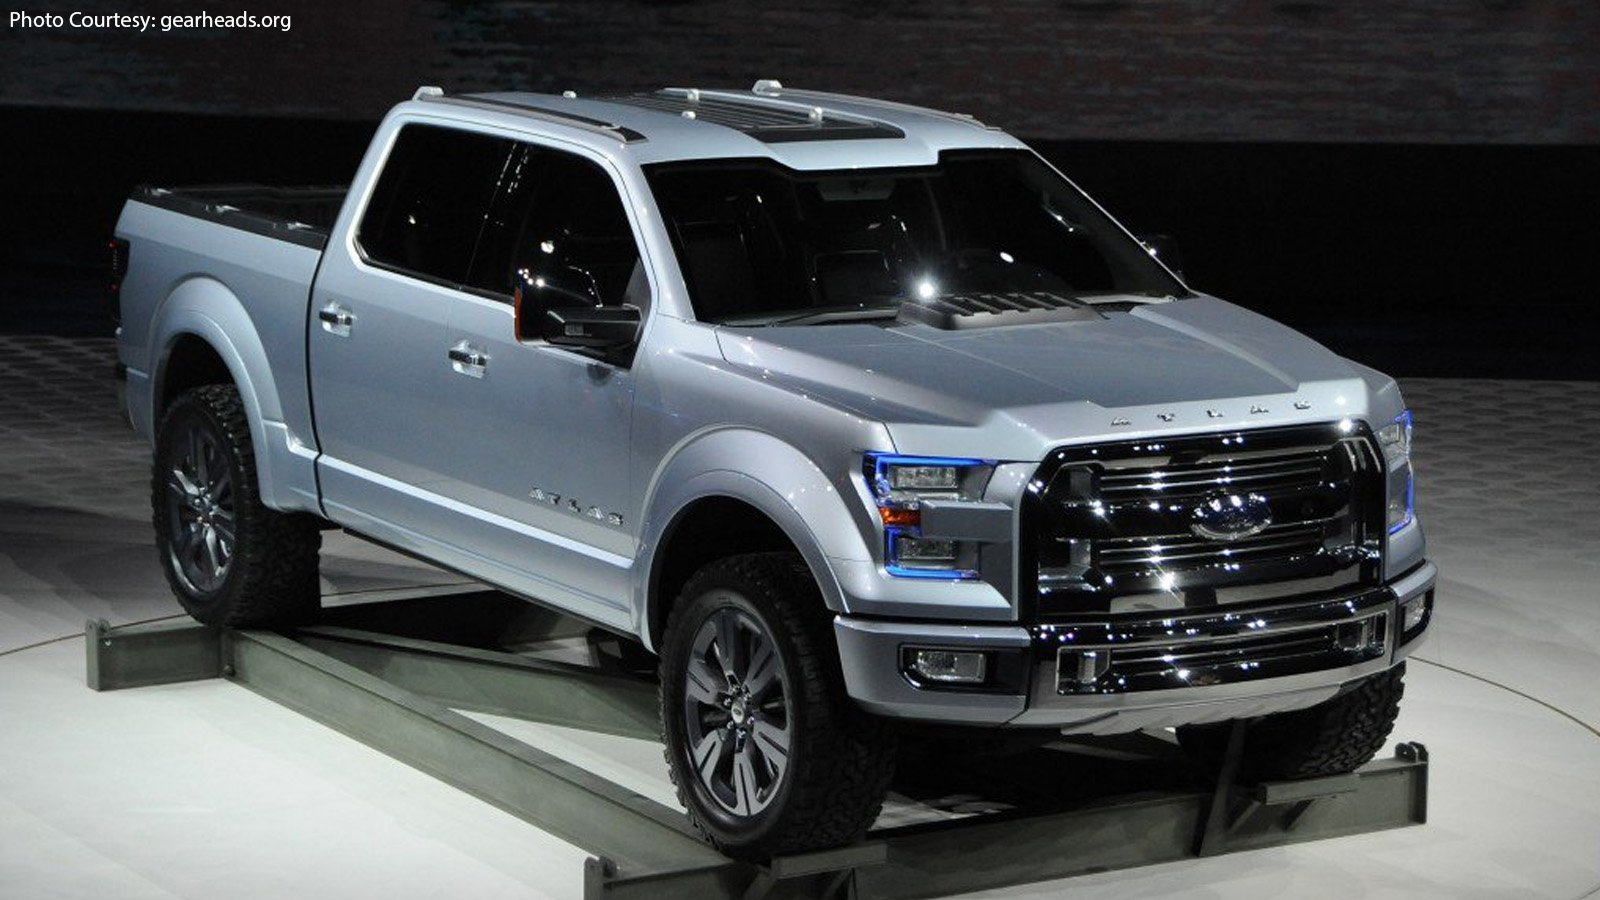 68 New 2020 Spy Shots Ford F350 Diesel Prices